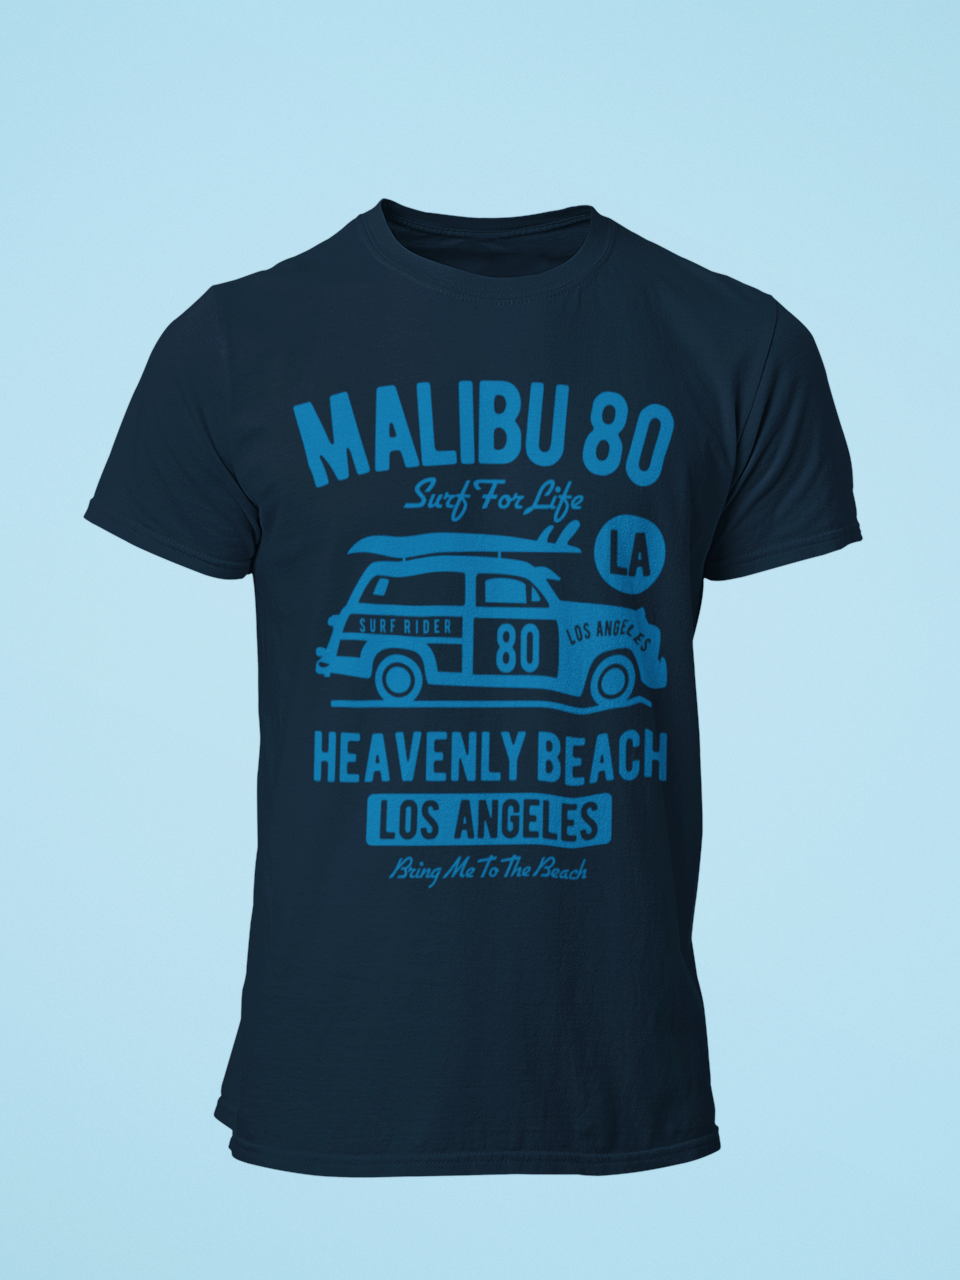 Malibu - Men's Half Sleeve T-Shirt - Navy Blue